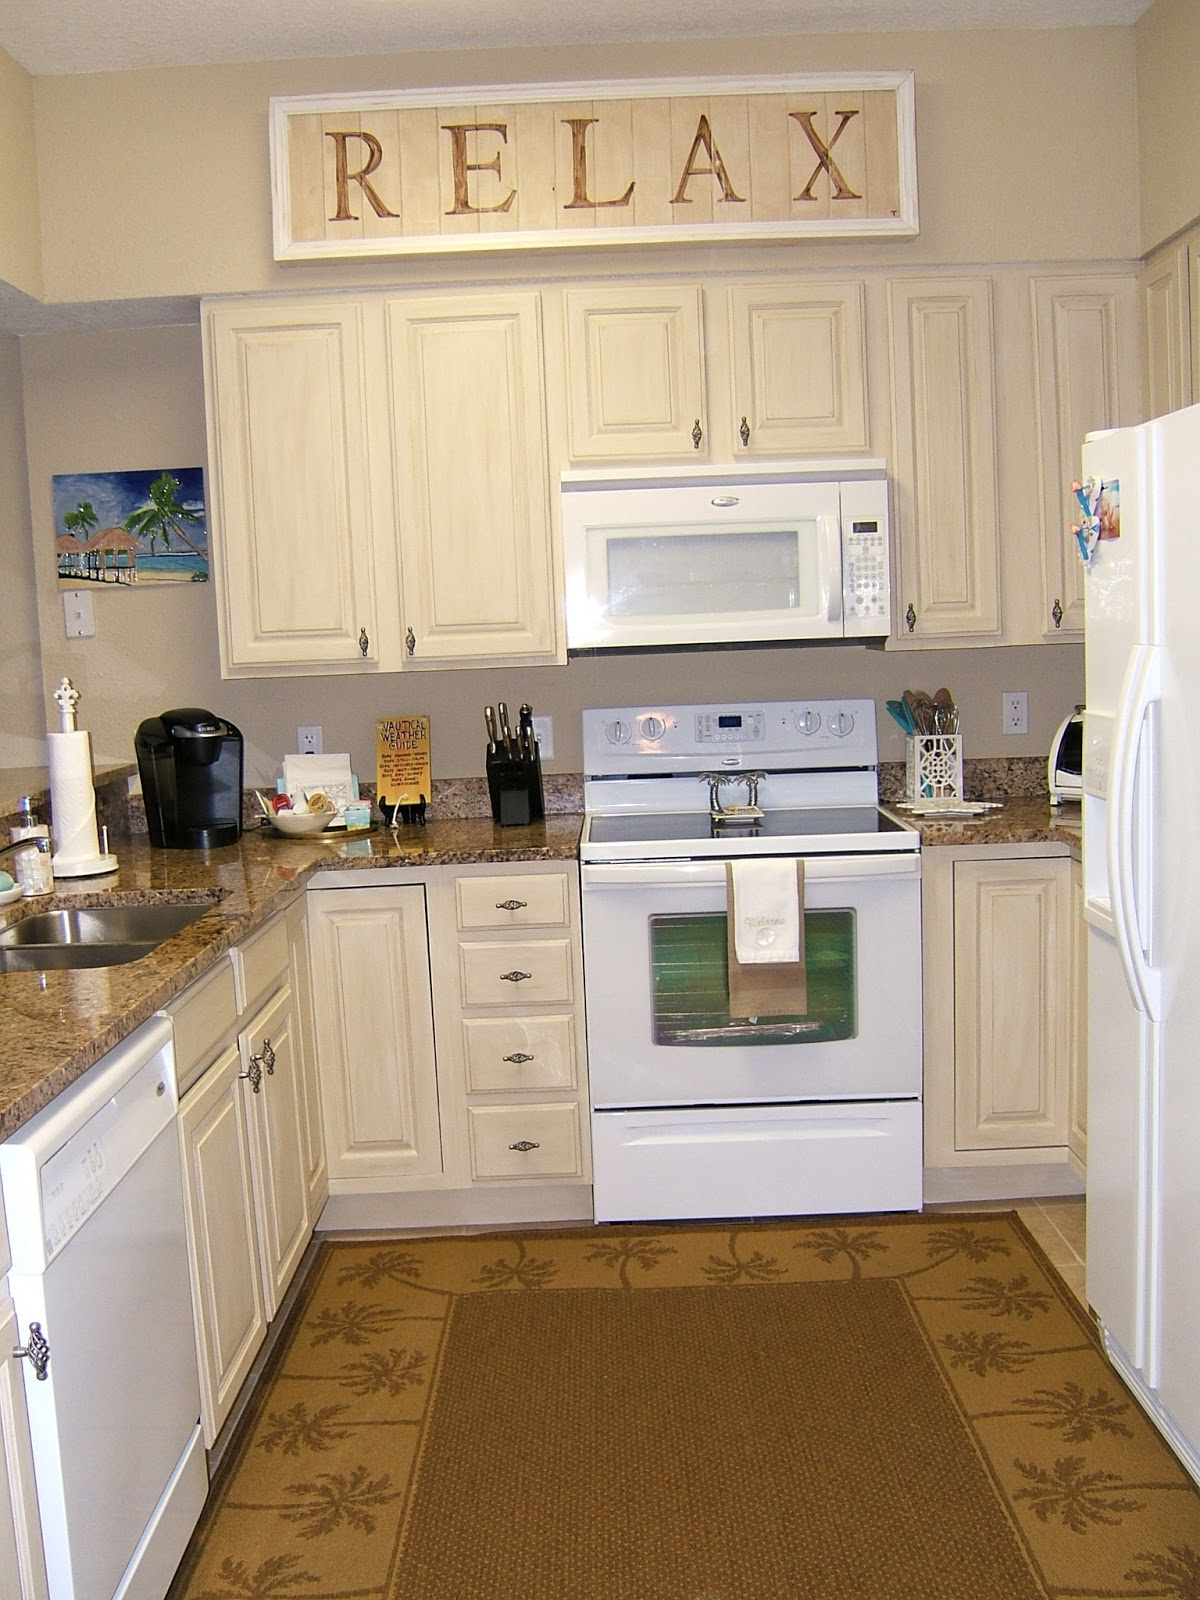 Awesome Jute Brown Kitchen Rug In Full Length Size A Corner And Small Kitchen Set  With Cream